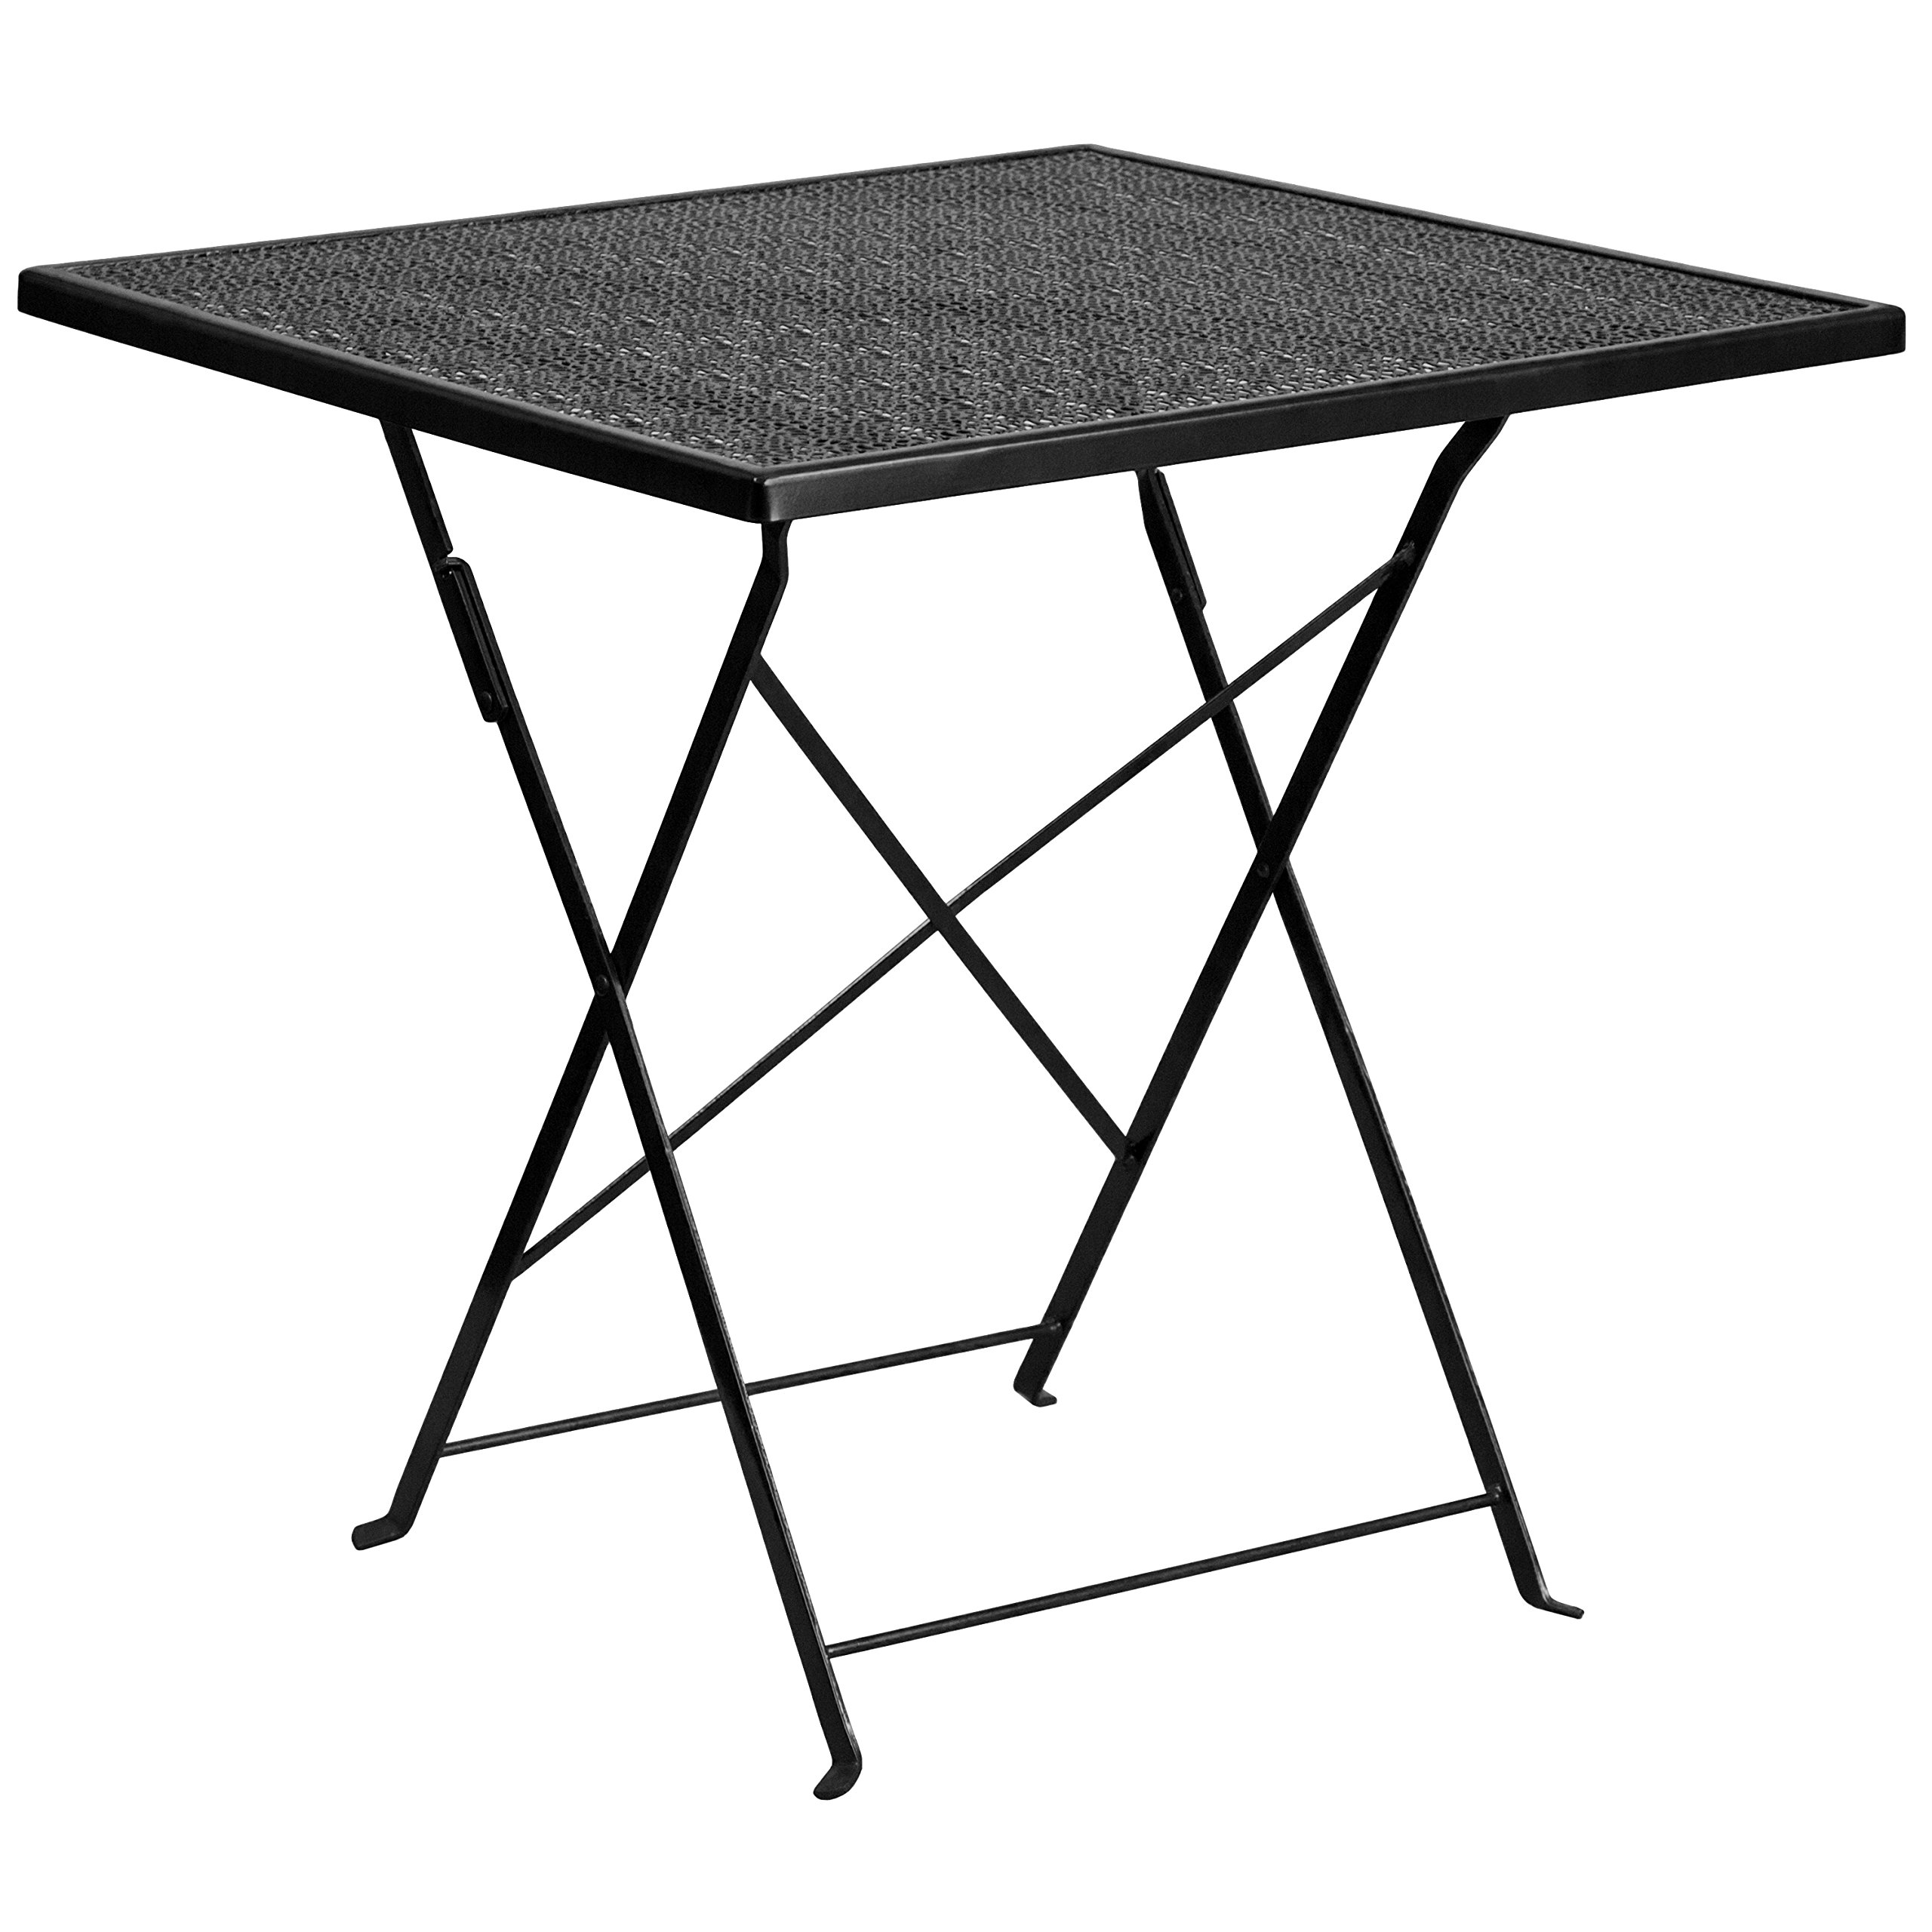 MFO 28'' Square Black Indoor-Outdoor Steel Folding Patio Table